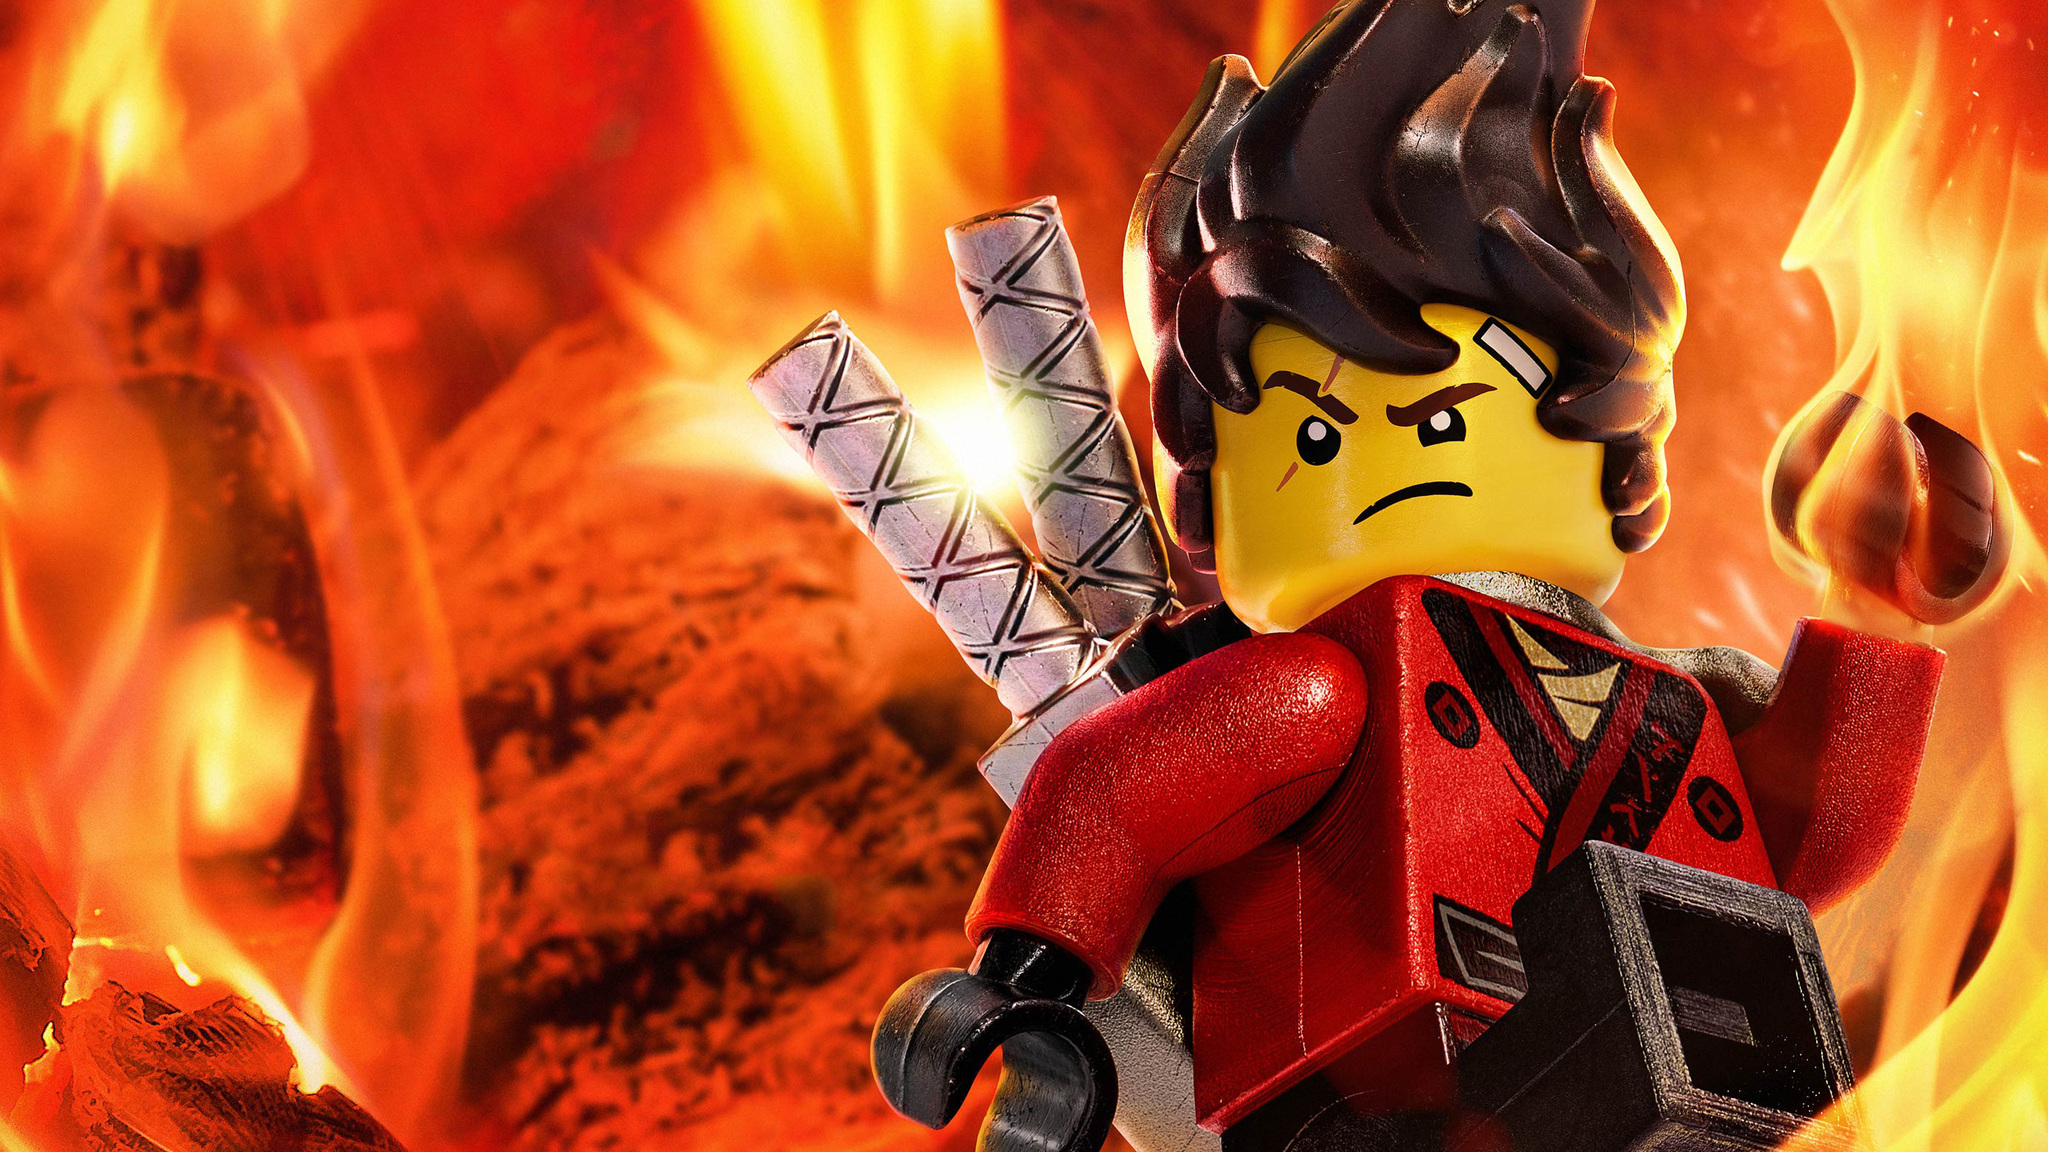 lego ninjago wallpaper high - photo #19